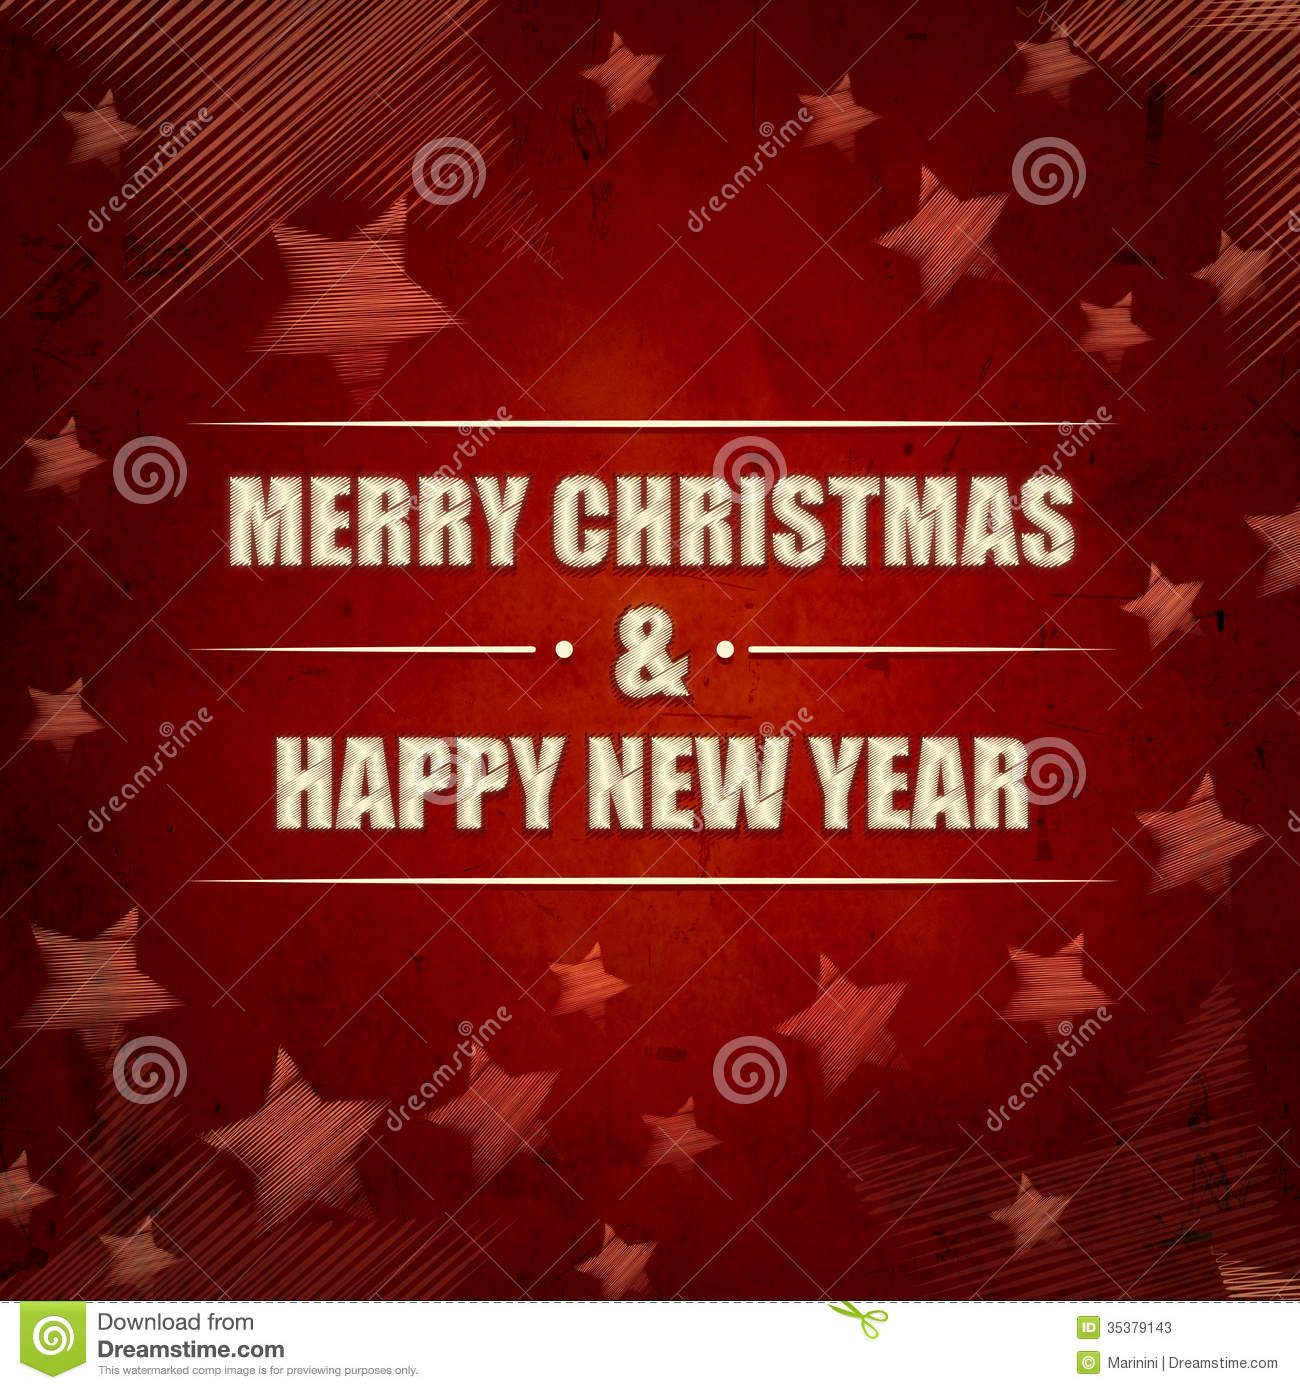 download merry christmas and happy new year red retro background with st stock illustration